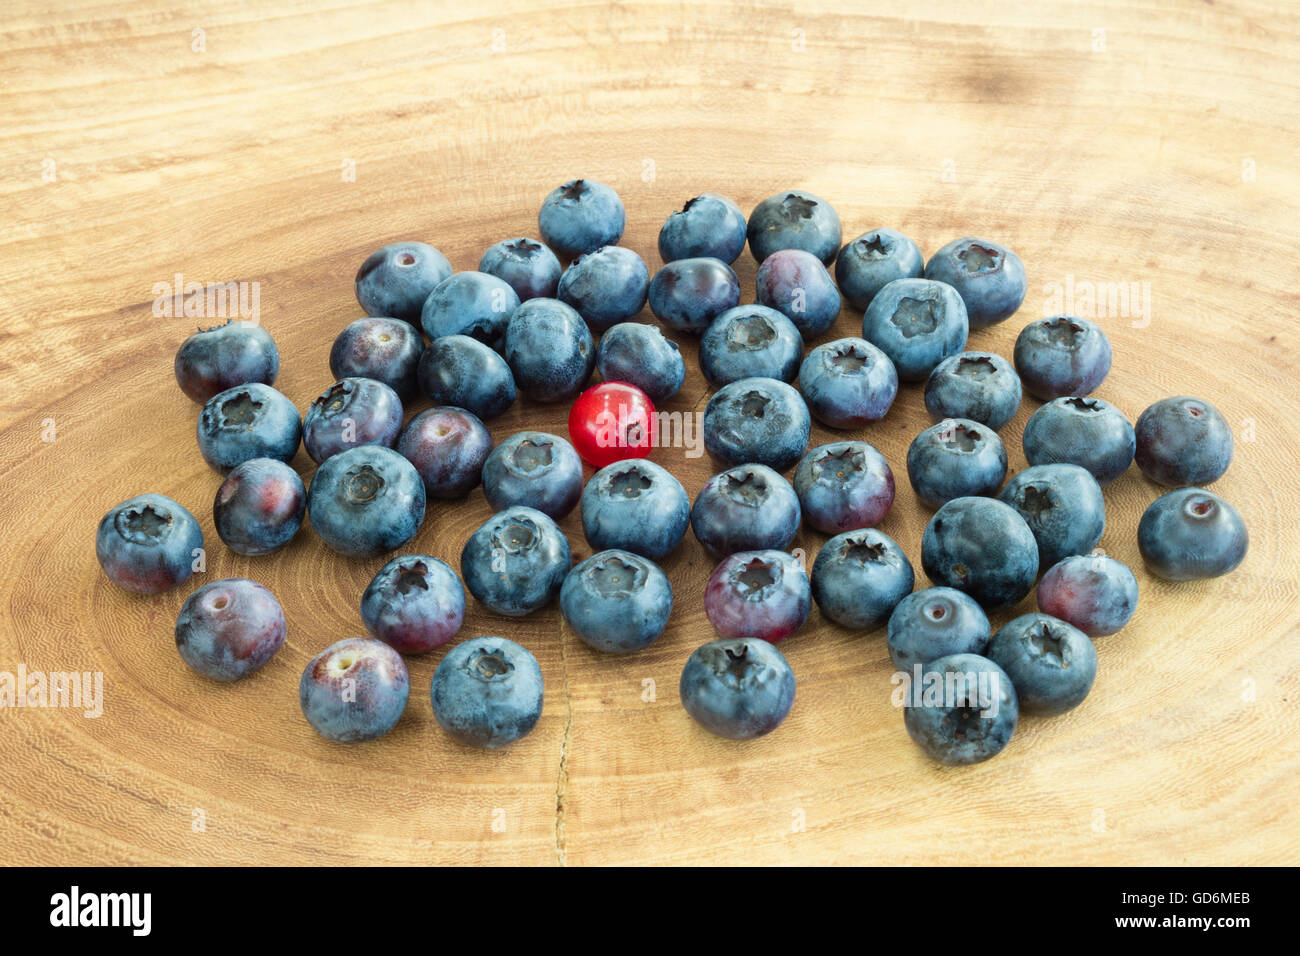 Group of dark blue bilberries and , in the middle, a red currant standing in the middle. - Stock Image